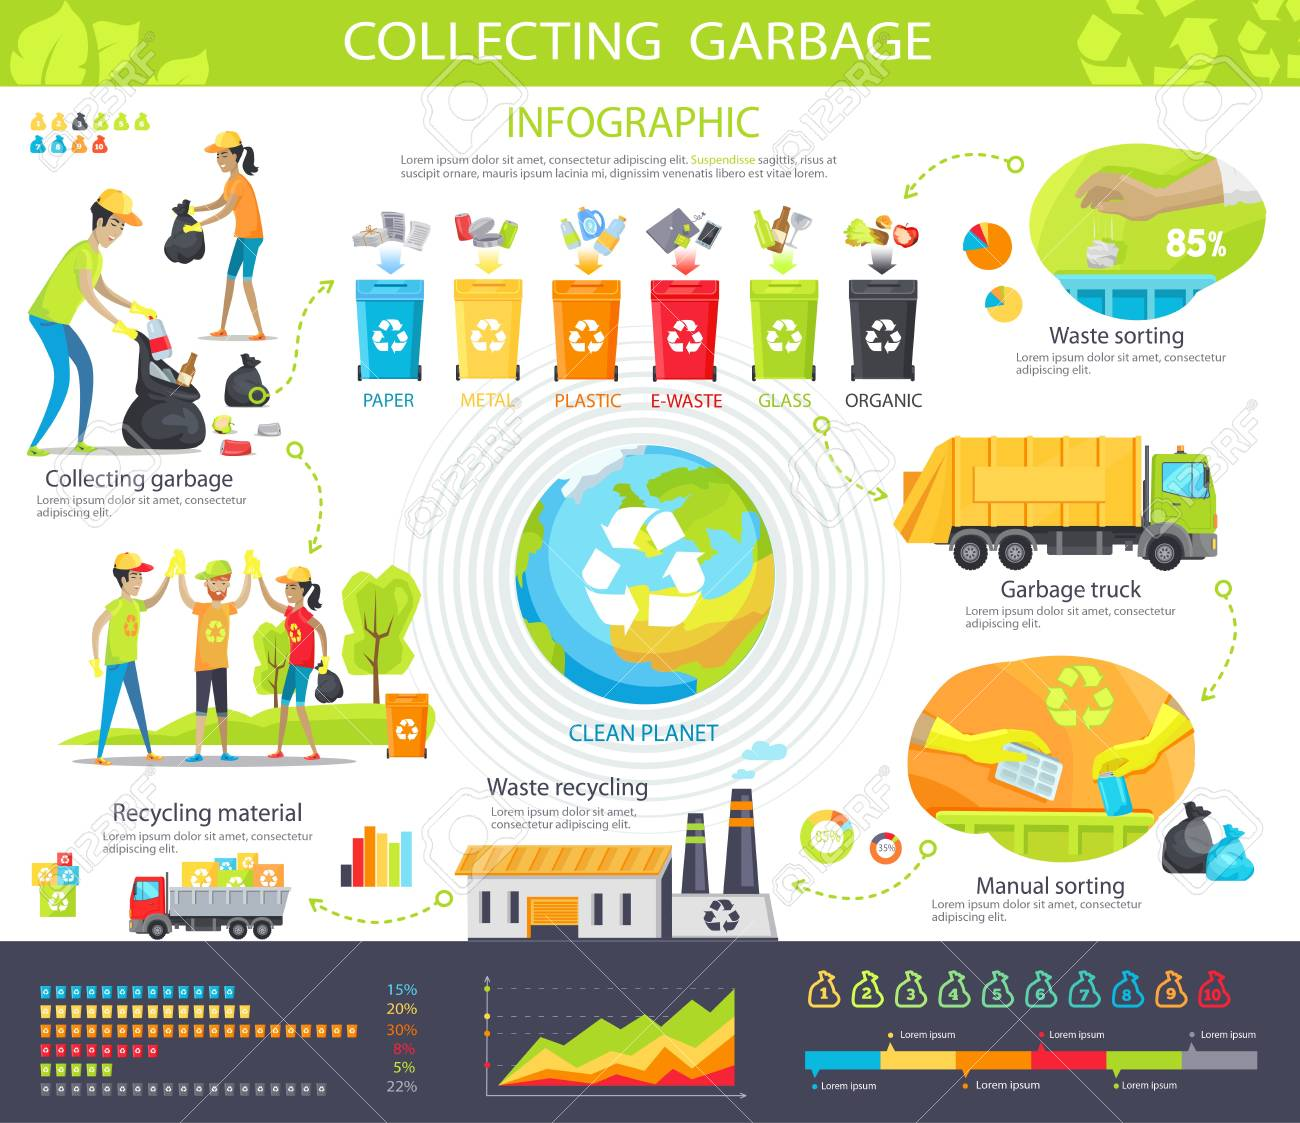 Collecting Garbage Infographic Poster with Steps illustration design - 90666865